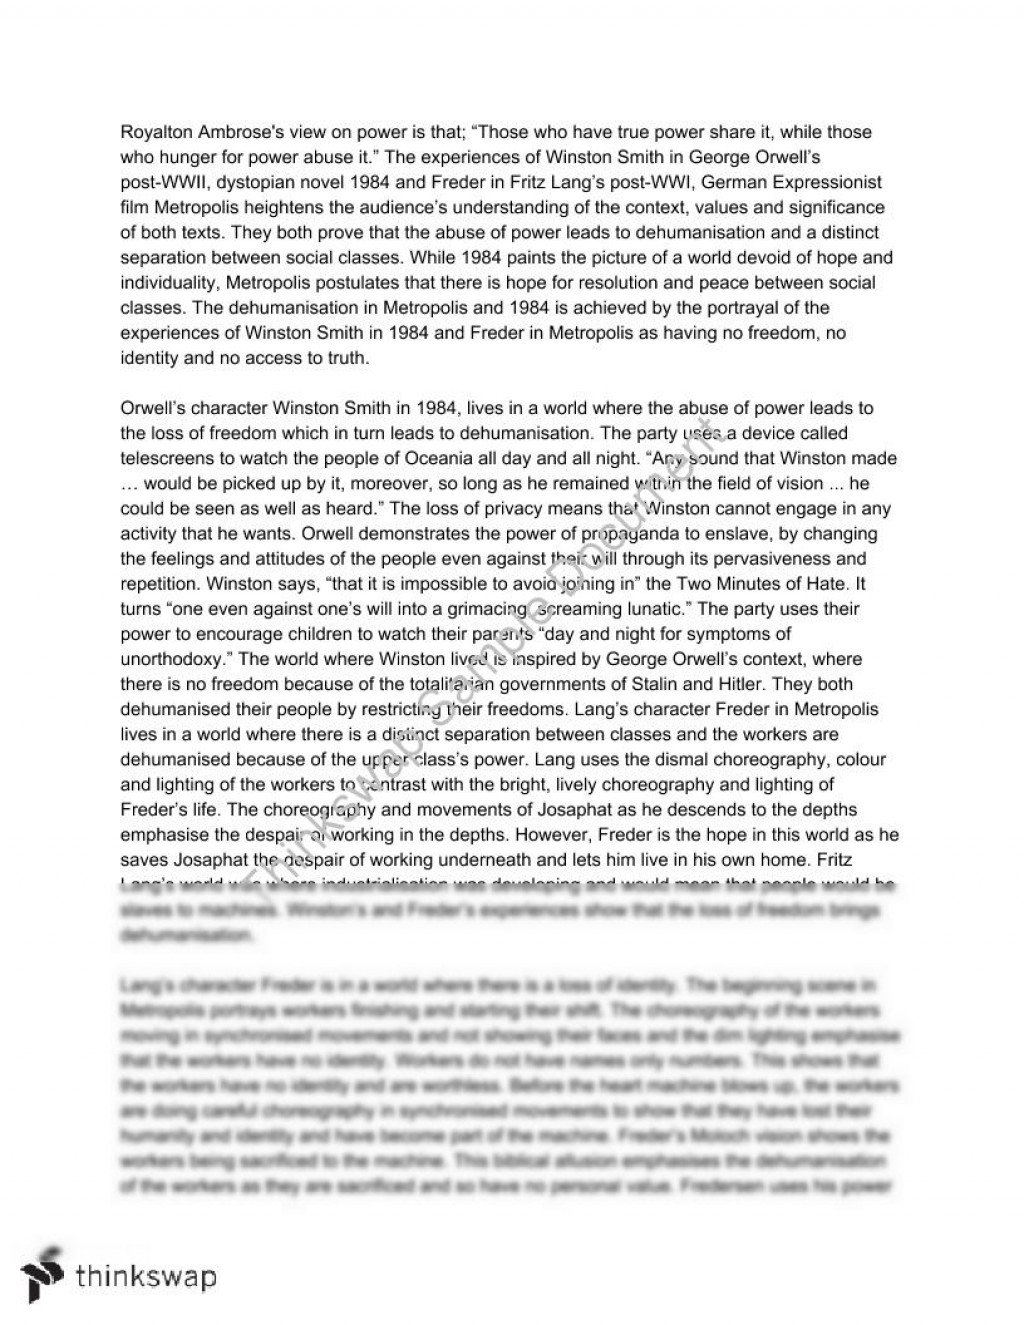 016 Essay Example Topics 97894 Metropolis And 1984 Video Essaypodcast Fadded Incredible Stasiland George Orwell Research Paper Book Questions Large